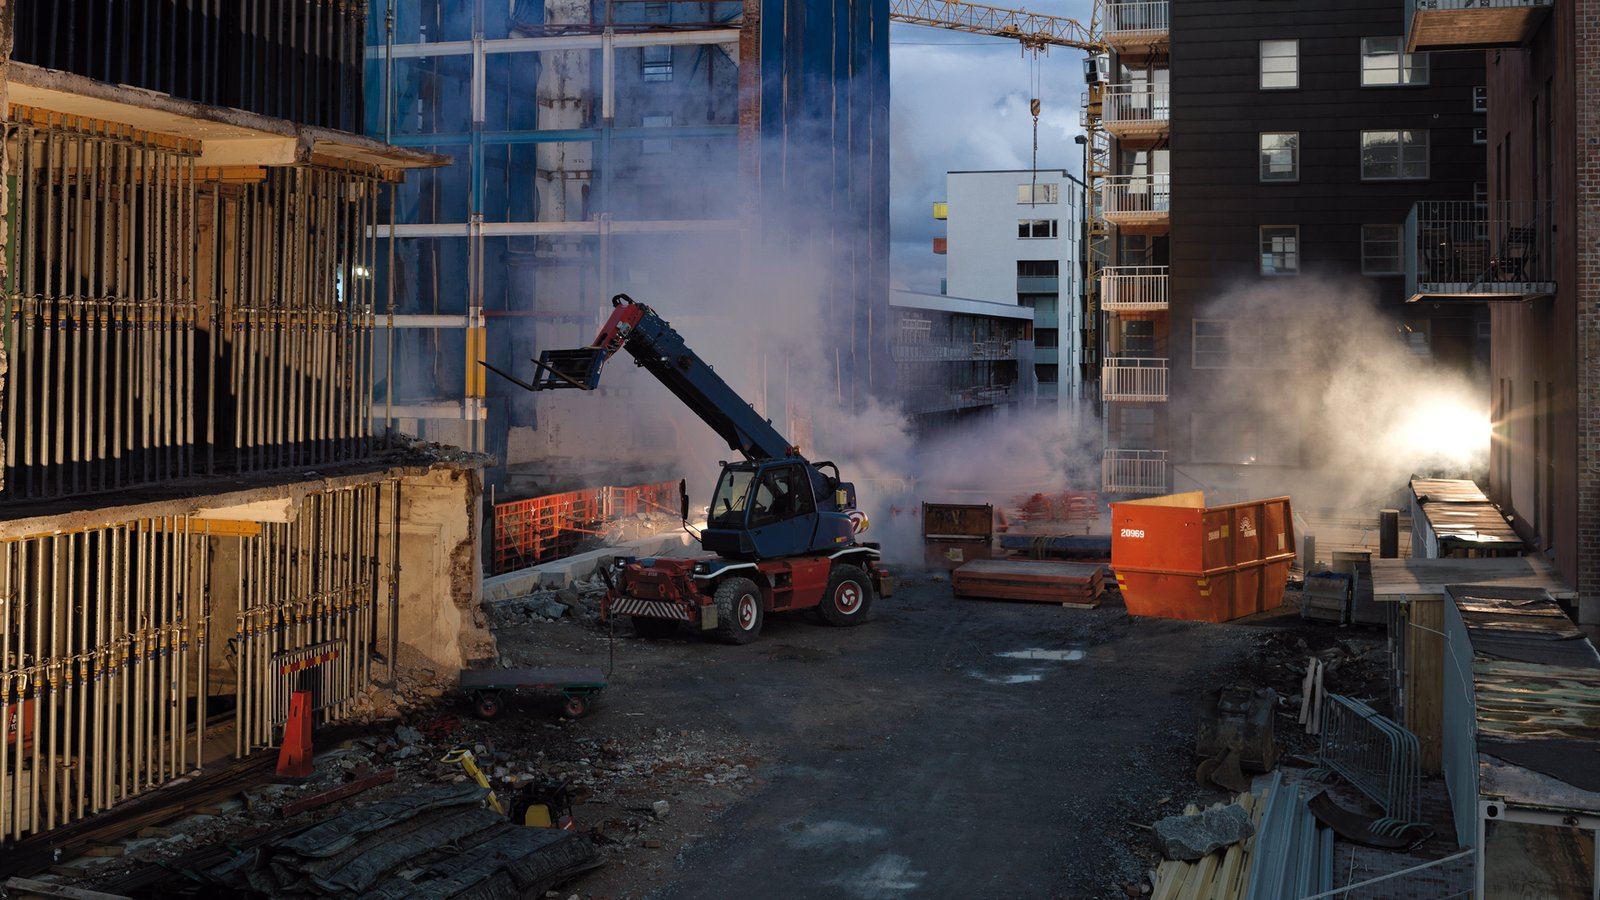 Heavy machine working near builidings.